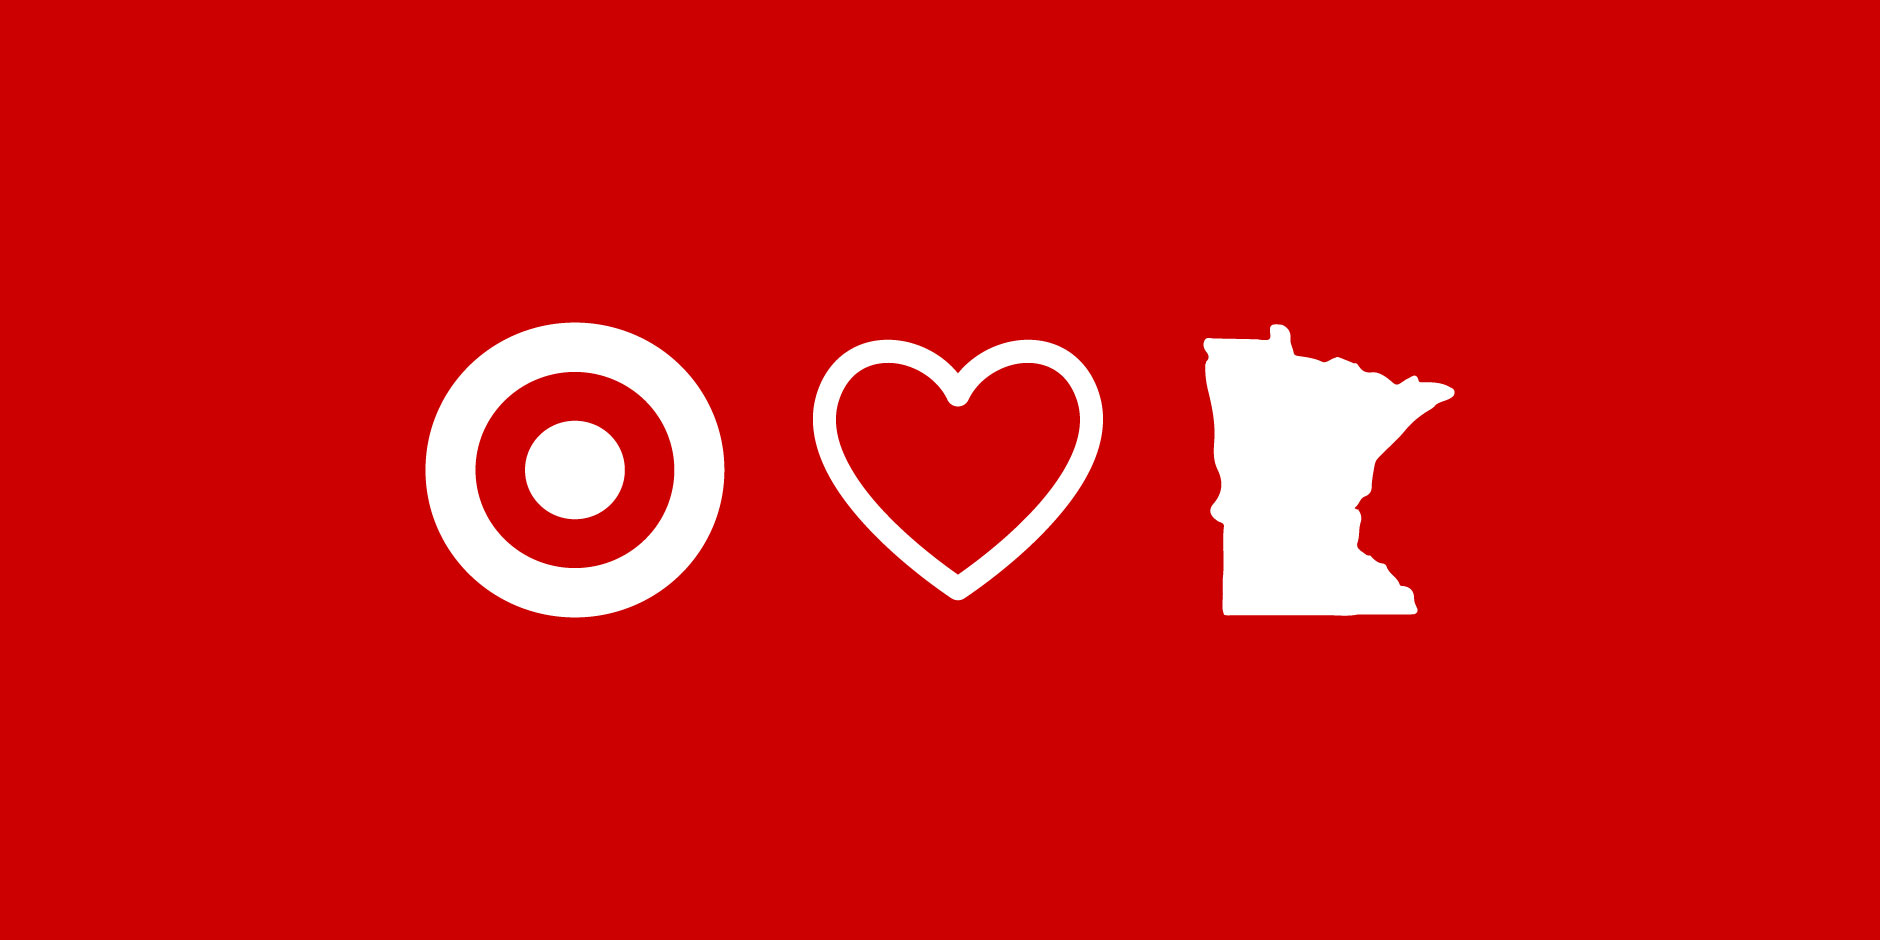 Three white icons on a red background. From left: Target's bullseye logo, a heart, and the state of Minnesota.